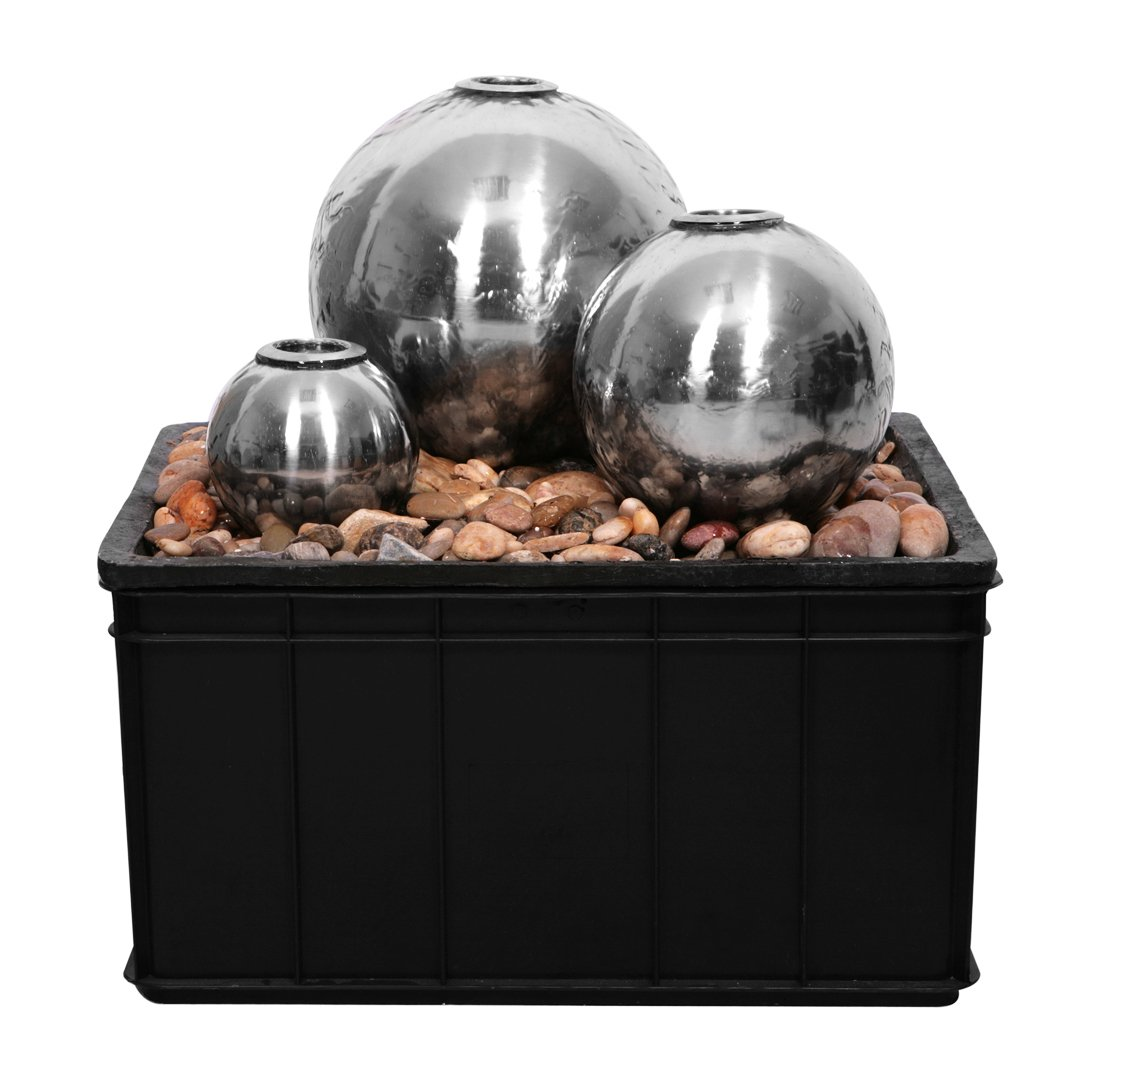 Magma Triple Stainless Steel Spheres Fire and Water Feature